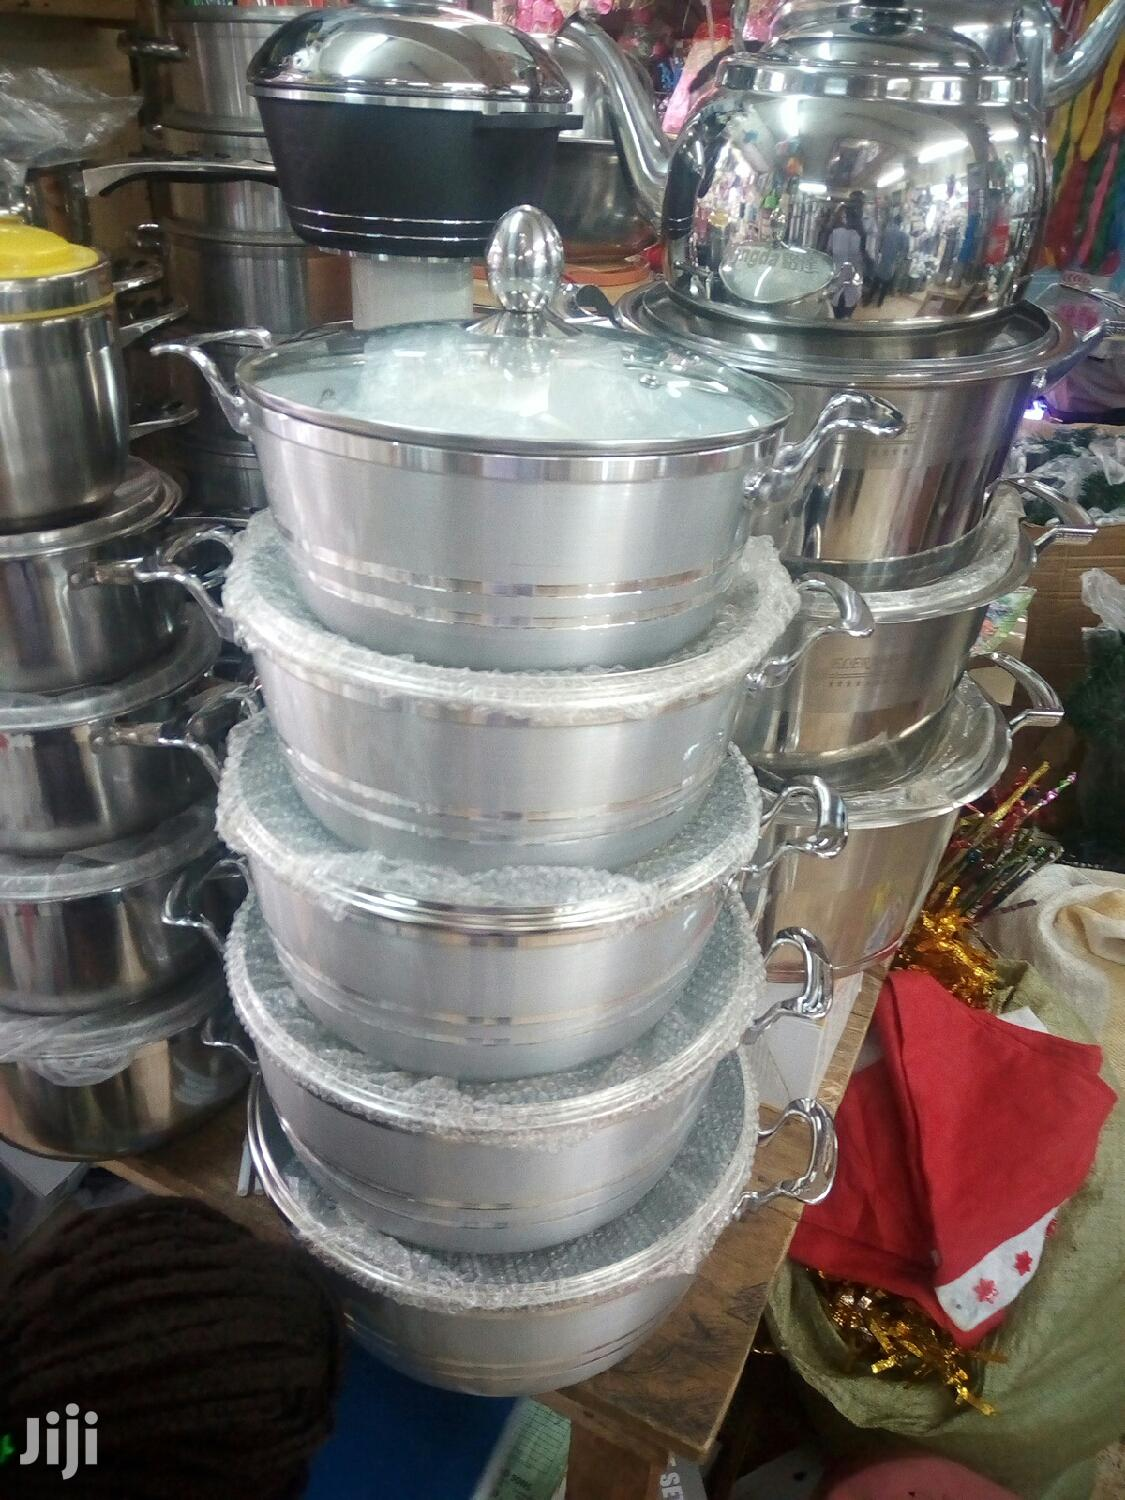 Non Sticking 5pcs Serving Dishes | Kitchen & Dining for sale in Kampala, Central Region, Uganda